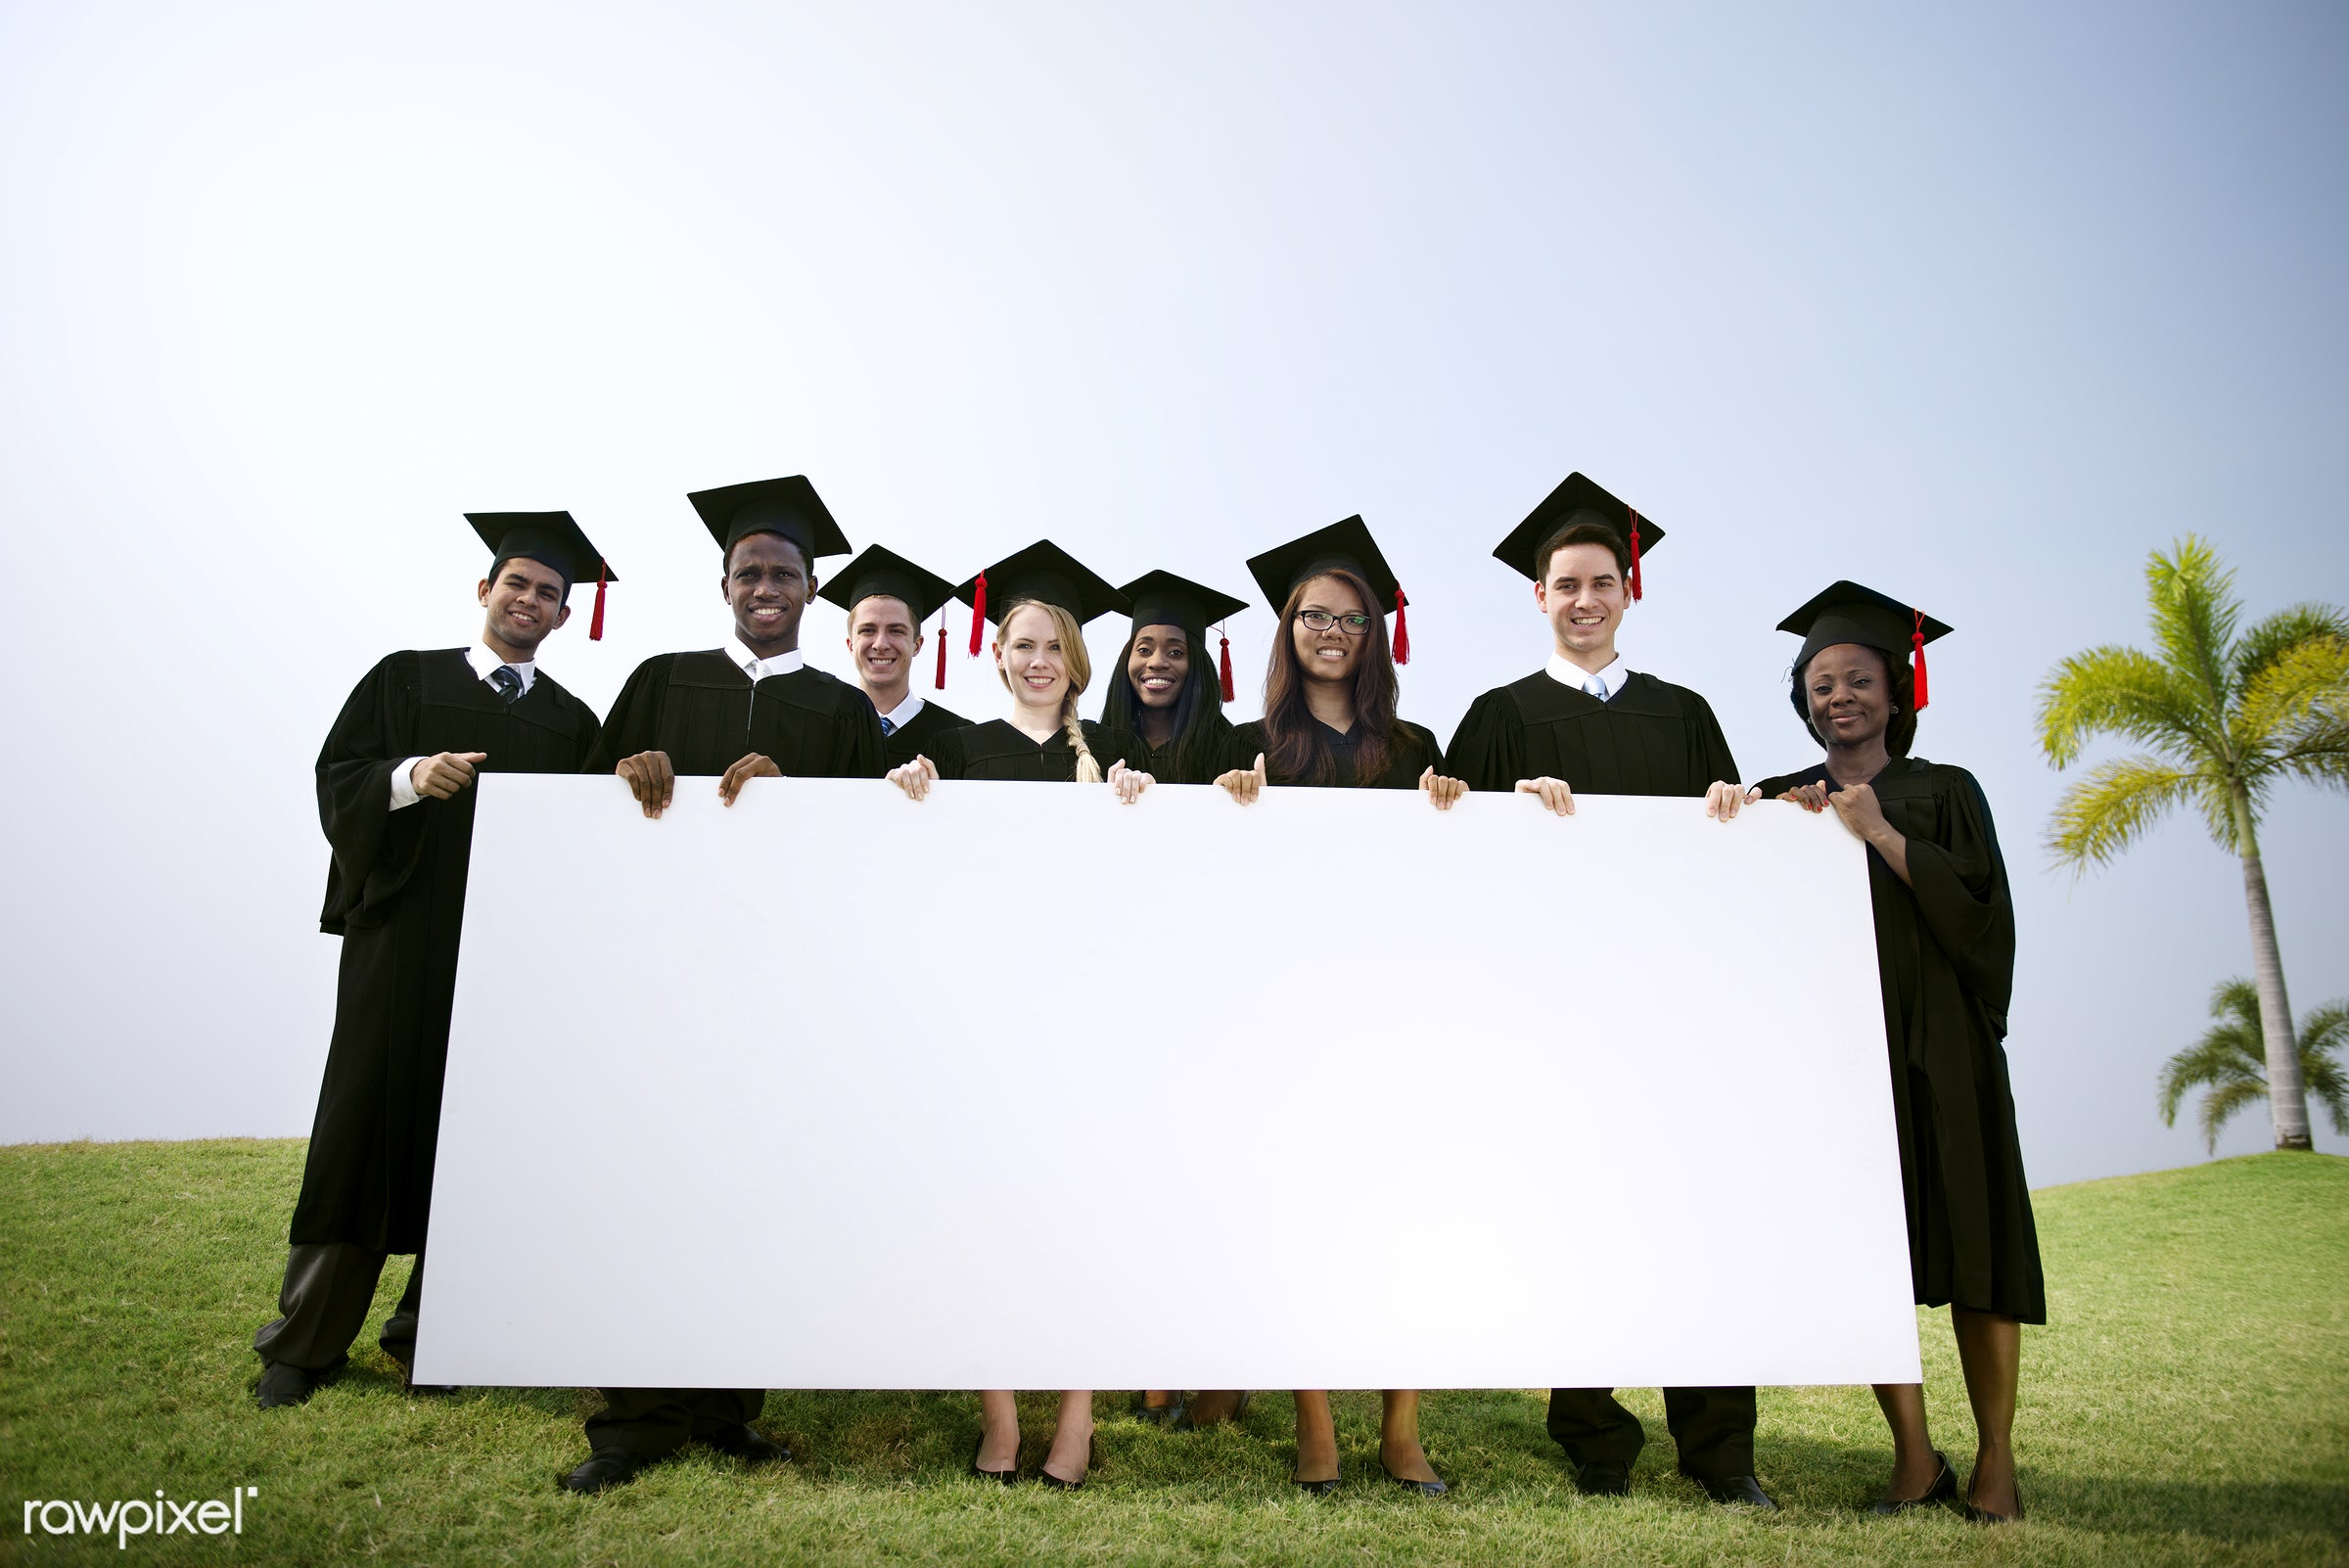 african american, african descent, asian ethnicity, black, blank, board, campus, cap, cheerful, college, copy space, degree...